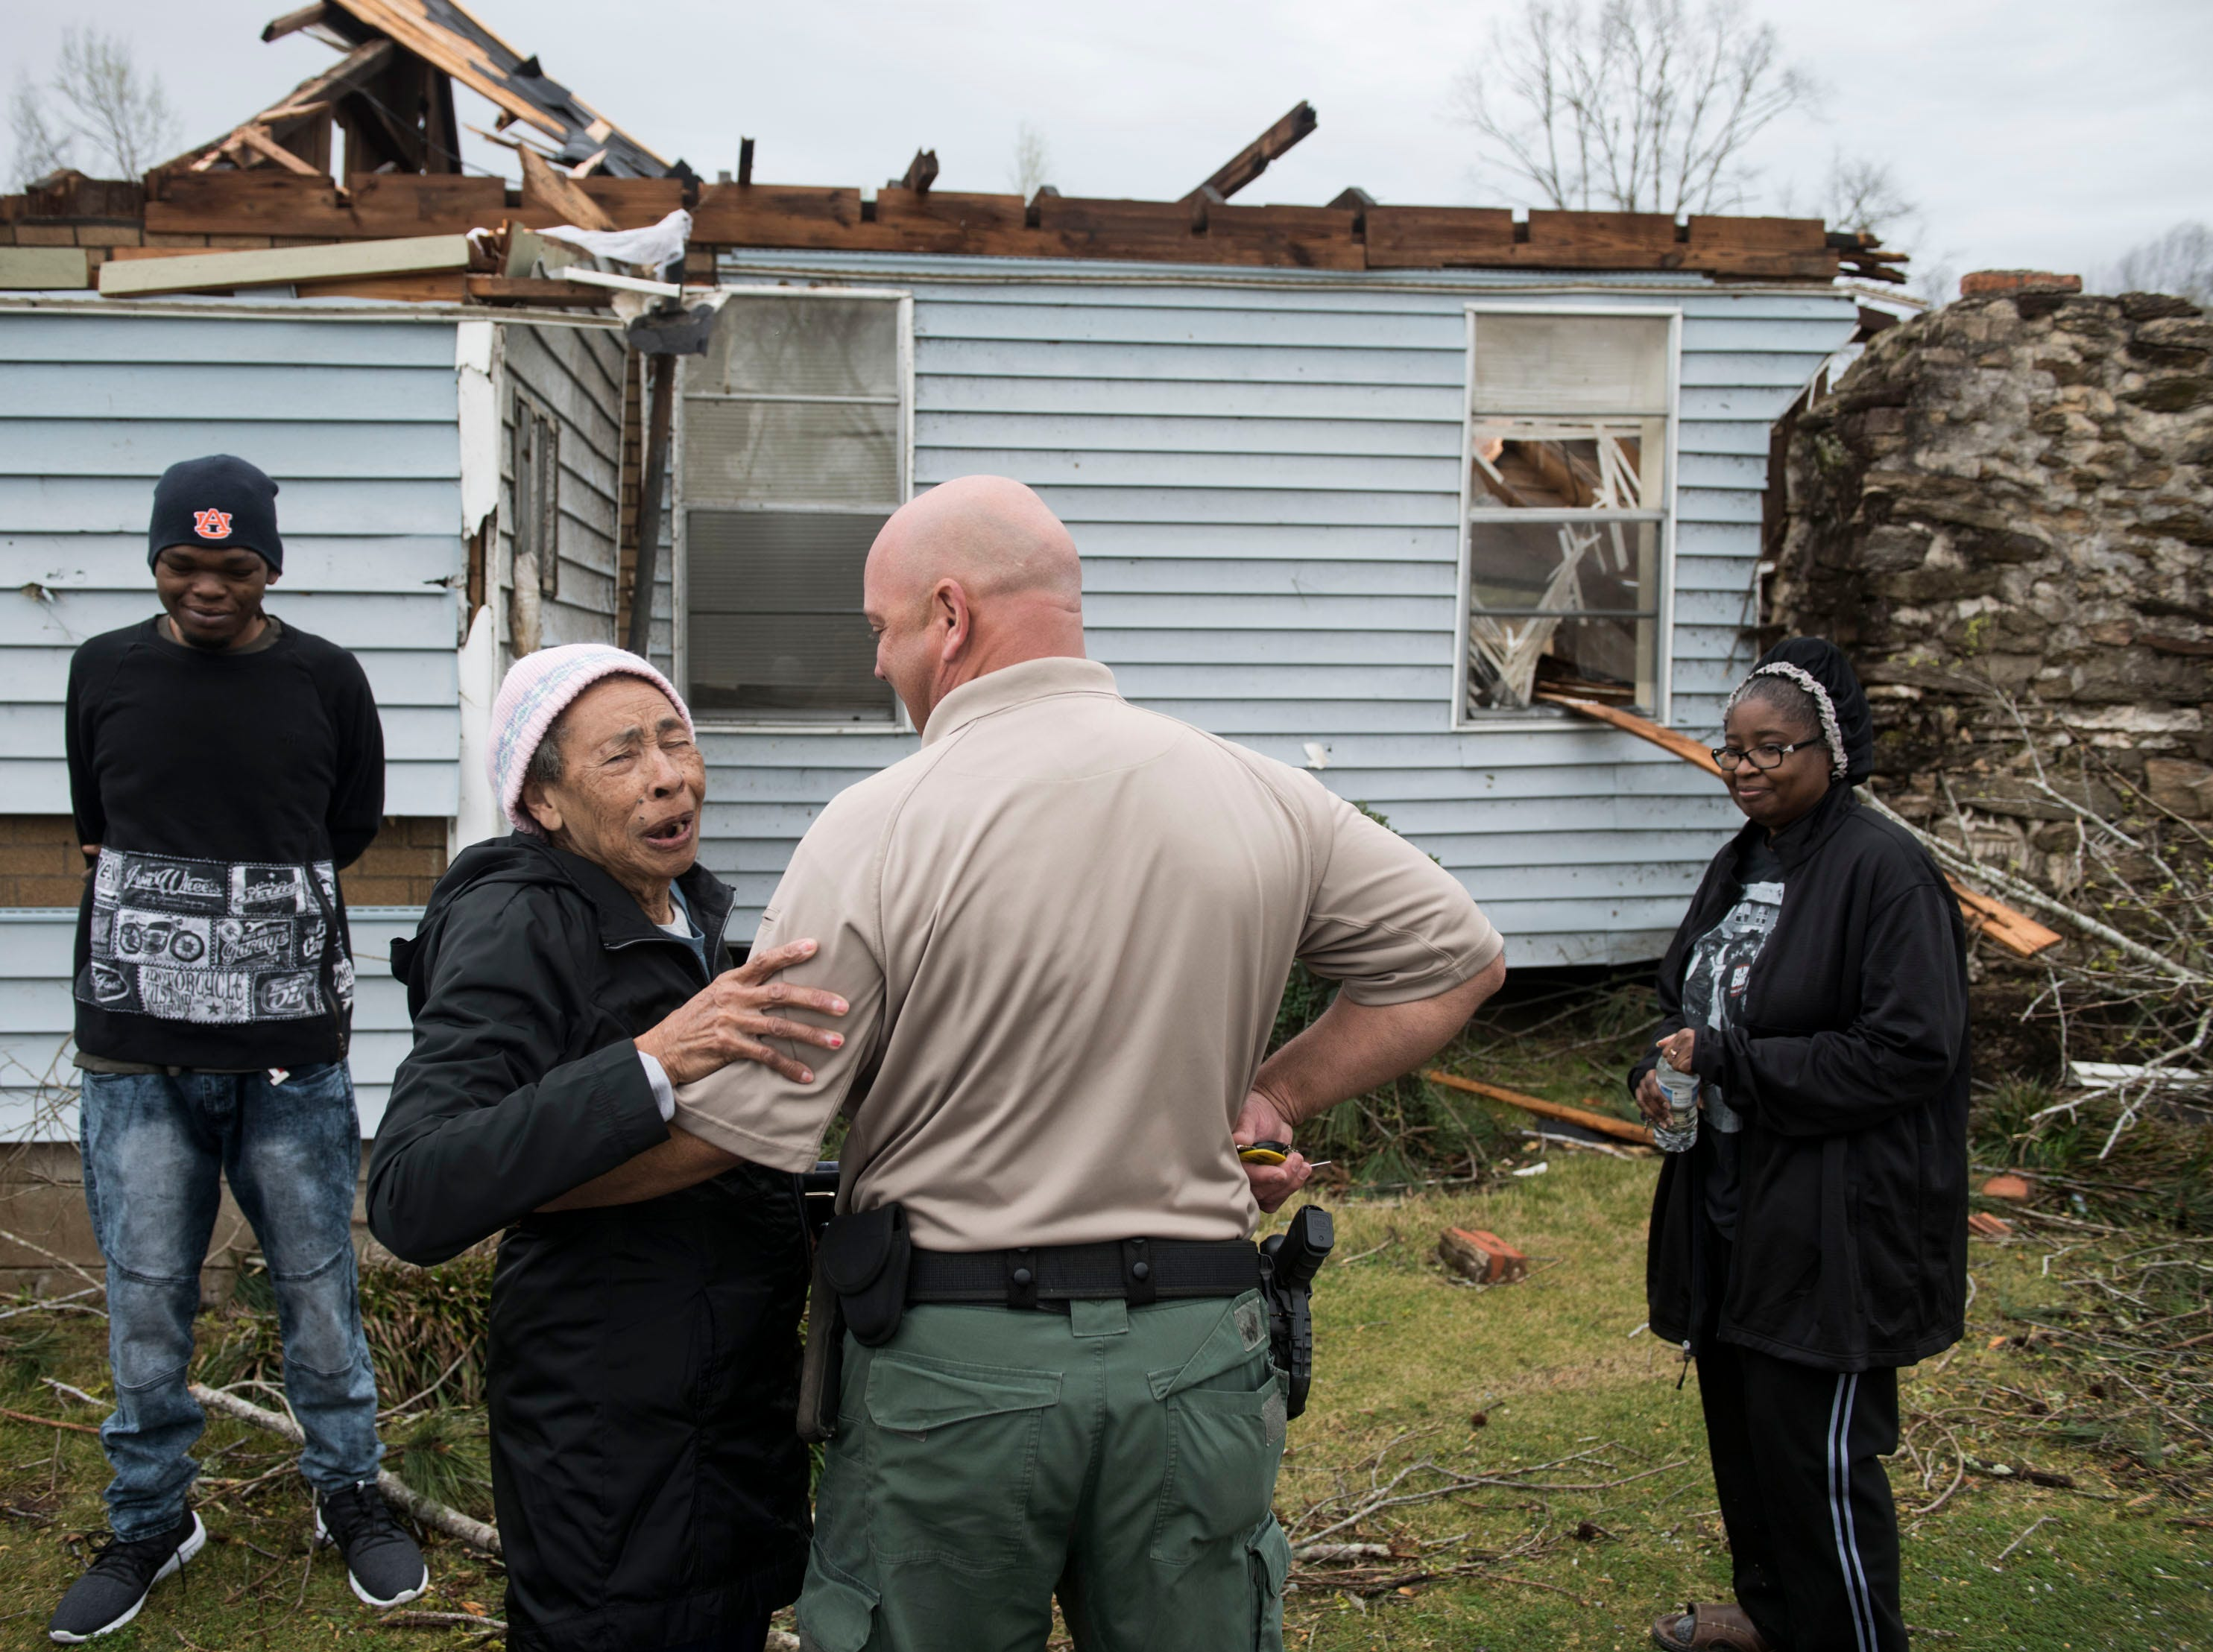 Arcuqila Pearson, 87, talks with Grady Myers, of Alabama Wildlife and Fisheries, who rescued Pearson the night before after a tornado struck her house in Titus, Ala., on Friday, March 15, 2019.